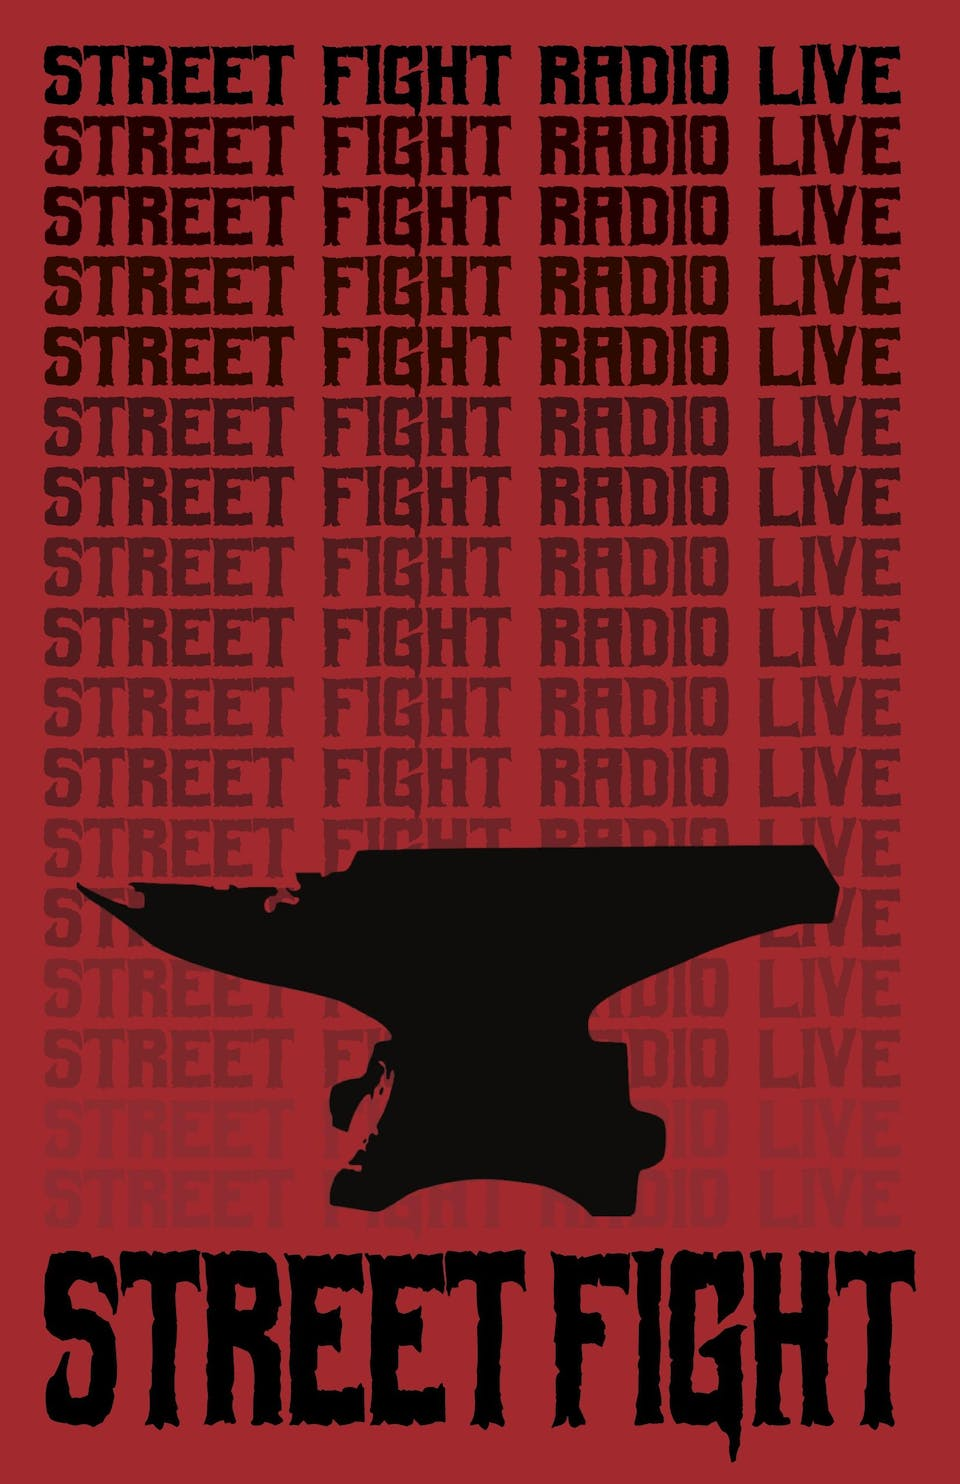 Street Fight Radio